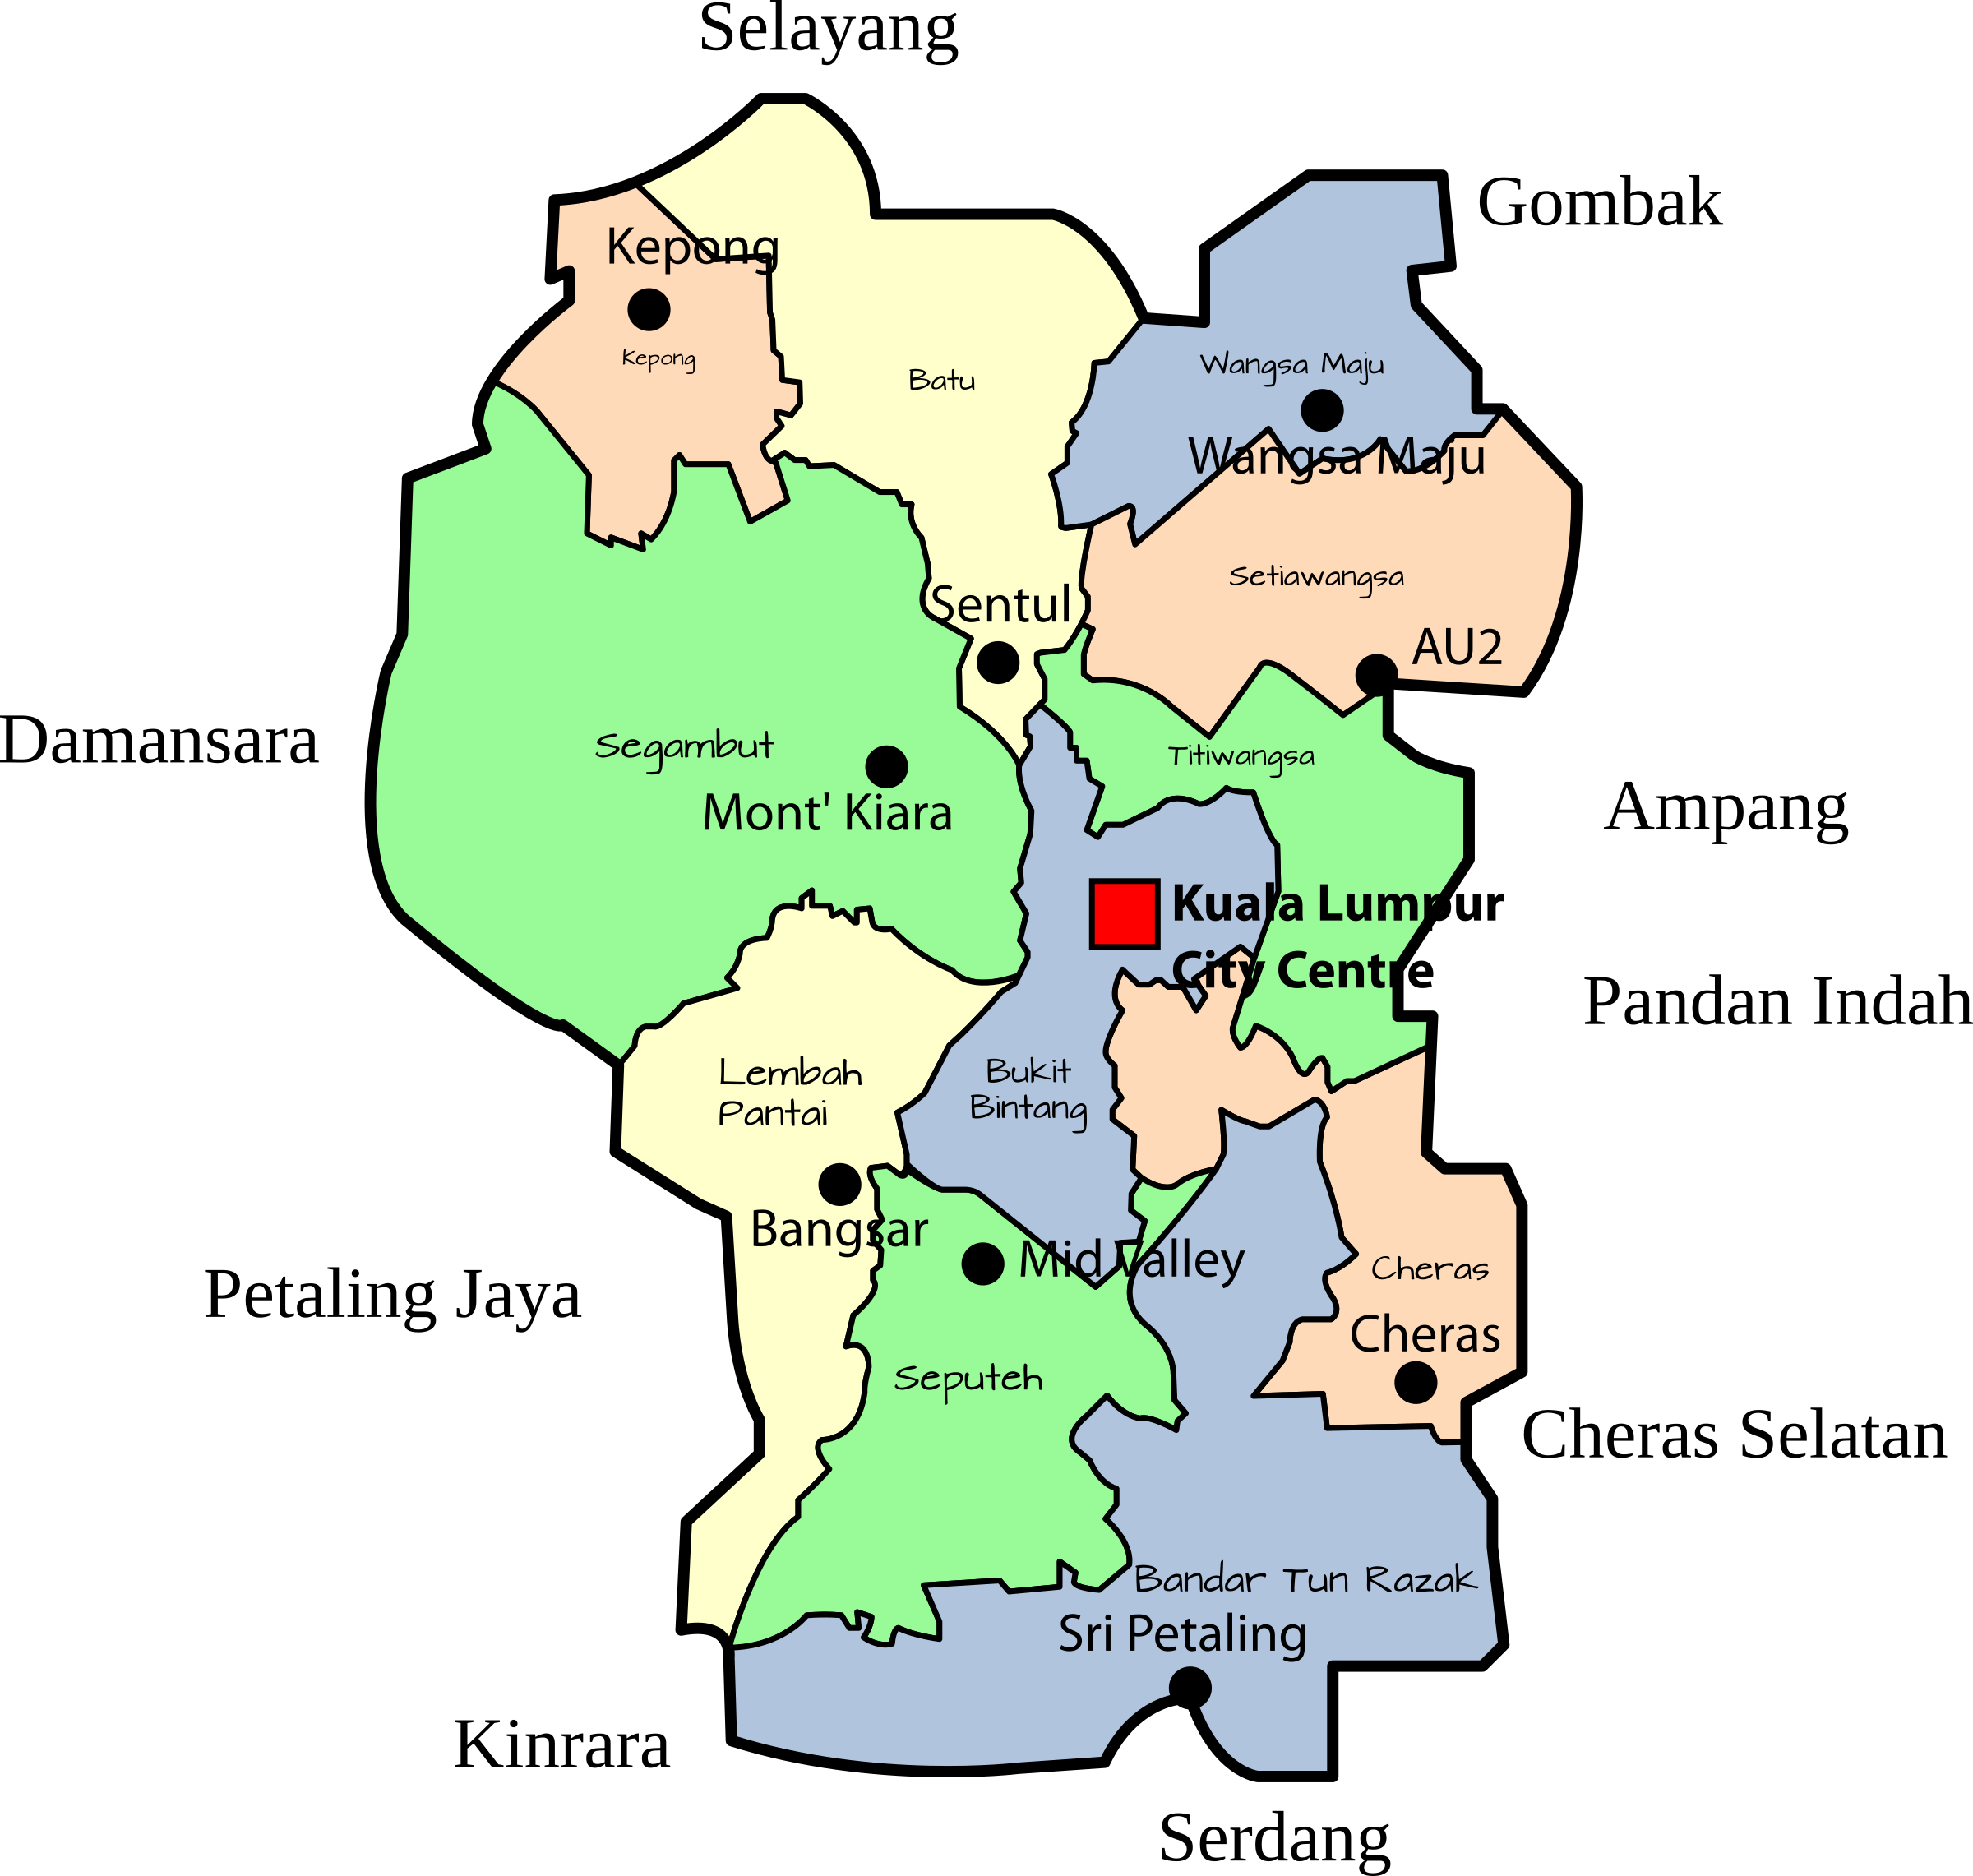 Parliamentary map of the Federal Territory of Kuala Lumpur, Malaysia by derkommander0916